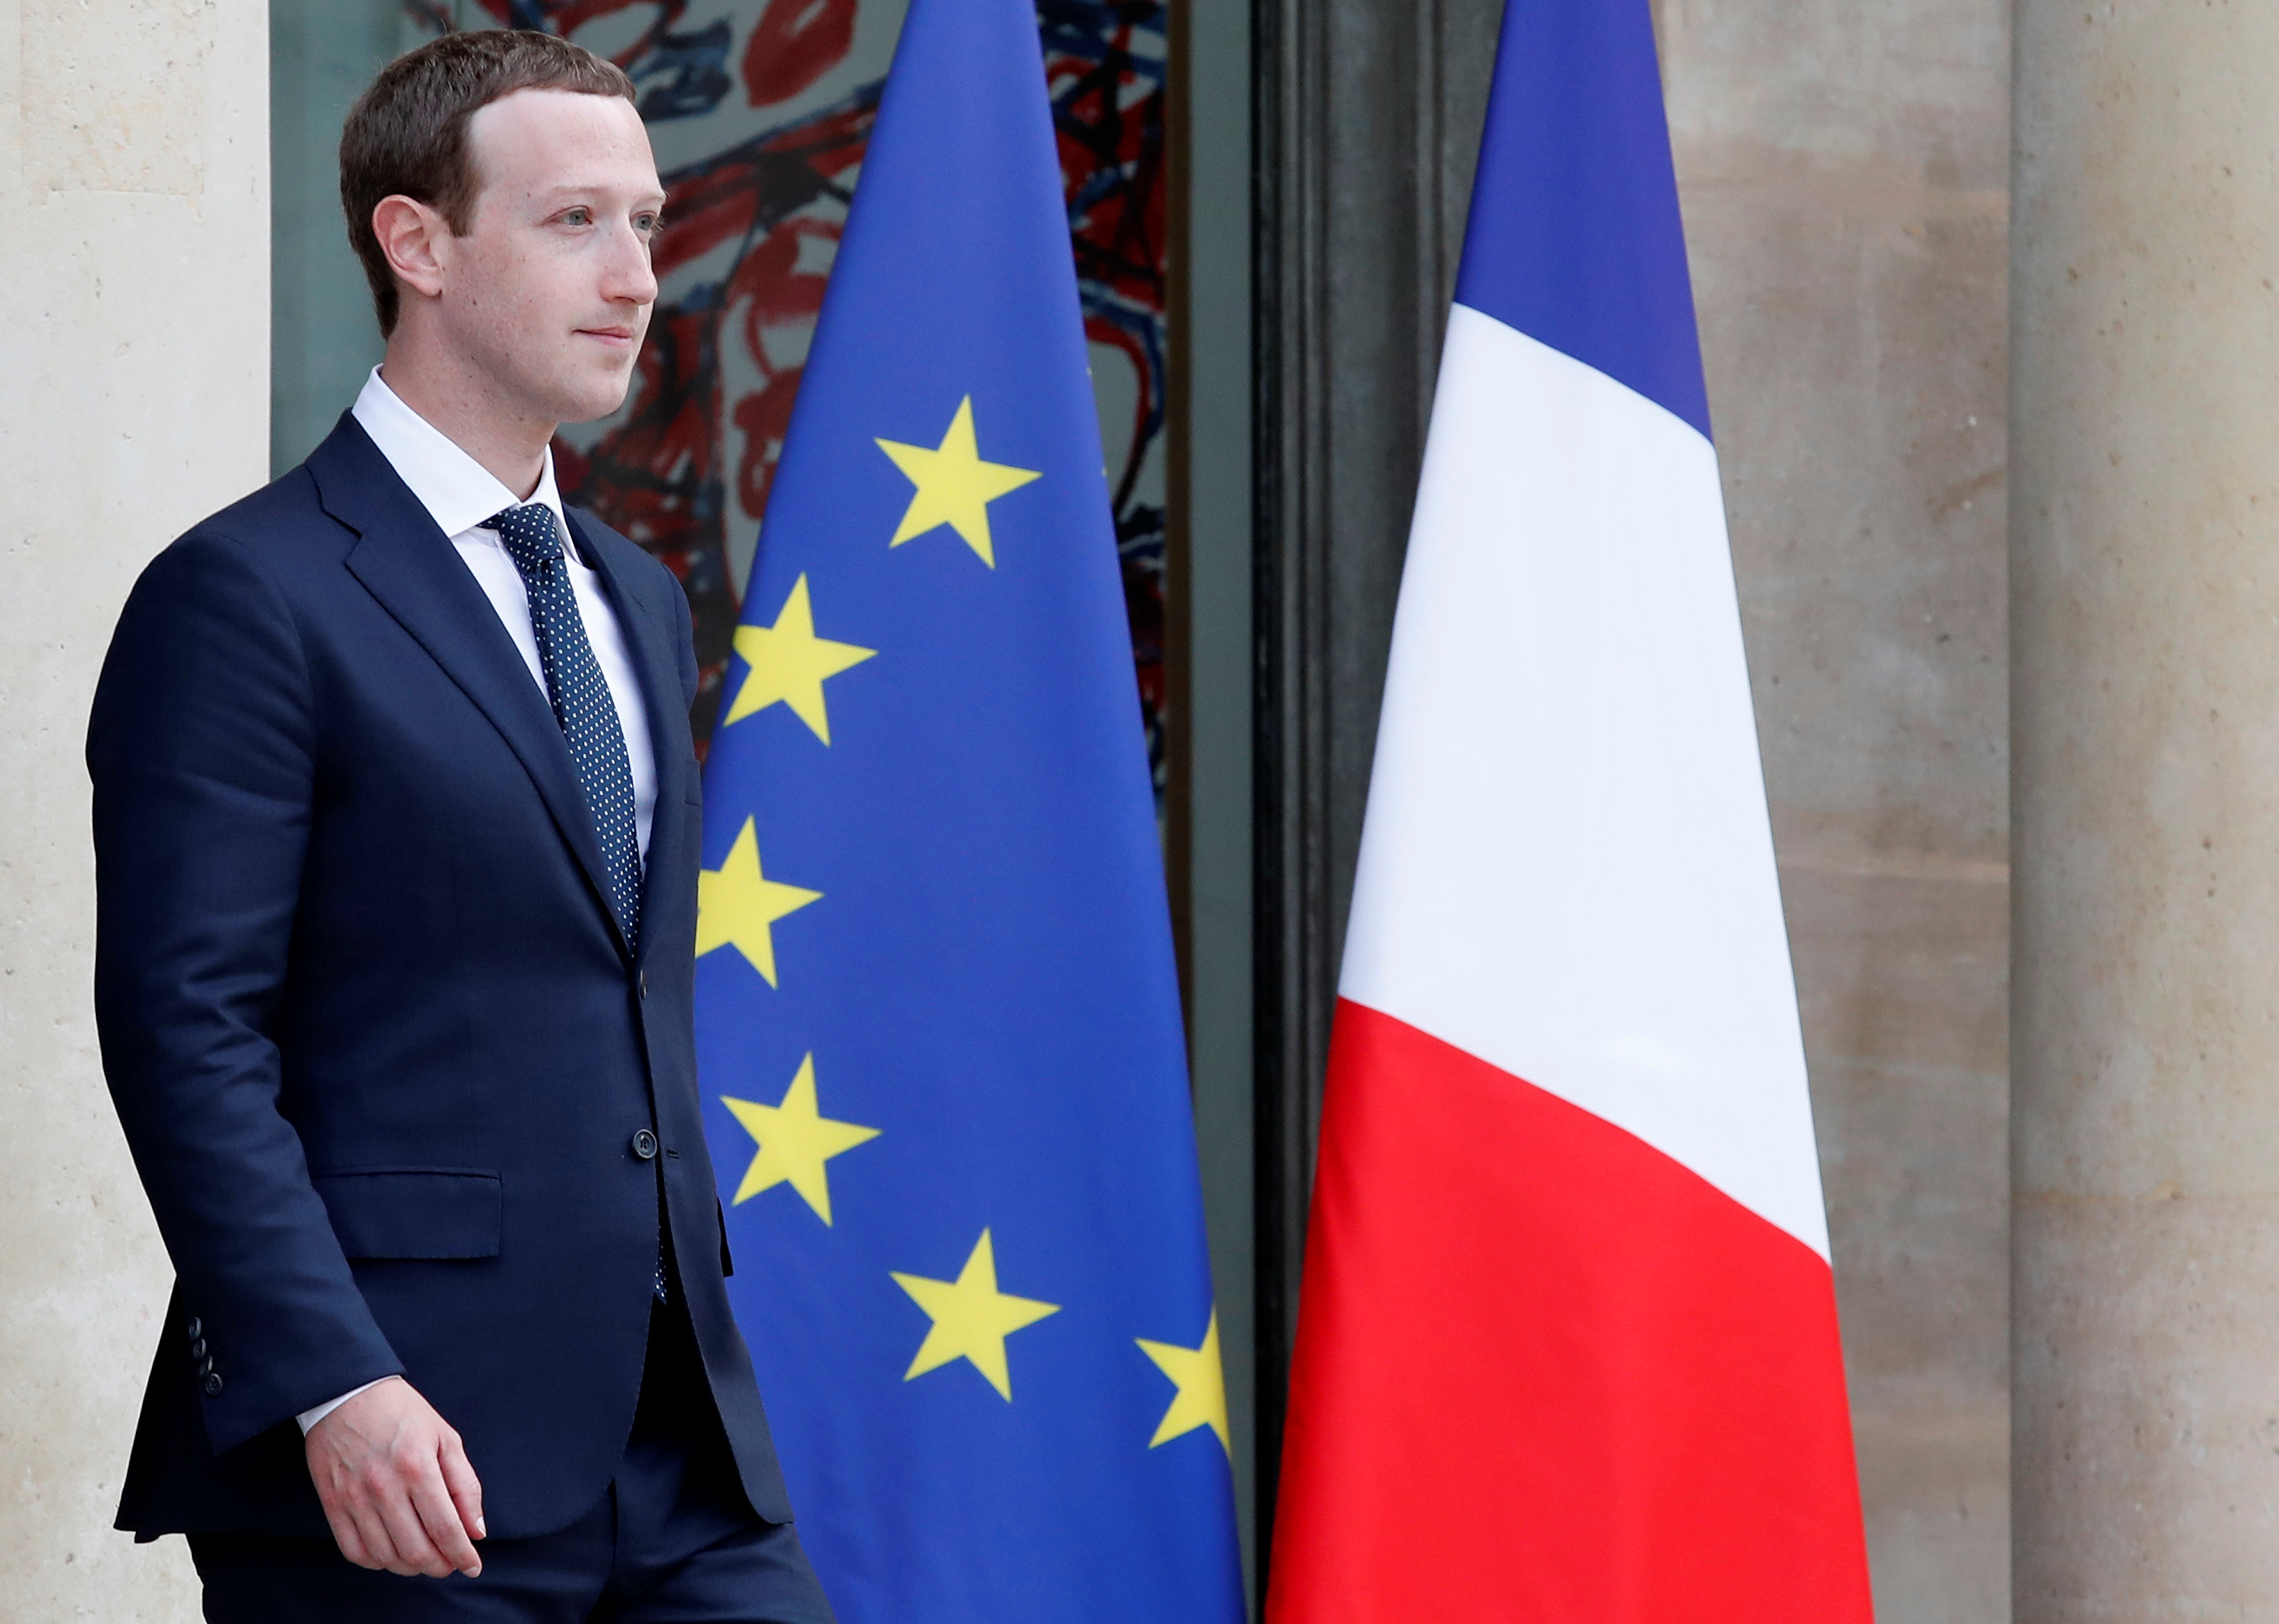 Facebook's CEO Mark Zuckerberg leaves after a meeting with French President at the Elysee Palace in Paris, France, May 23, 2018. REUTERS/Christian Hartmann